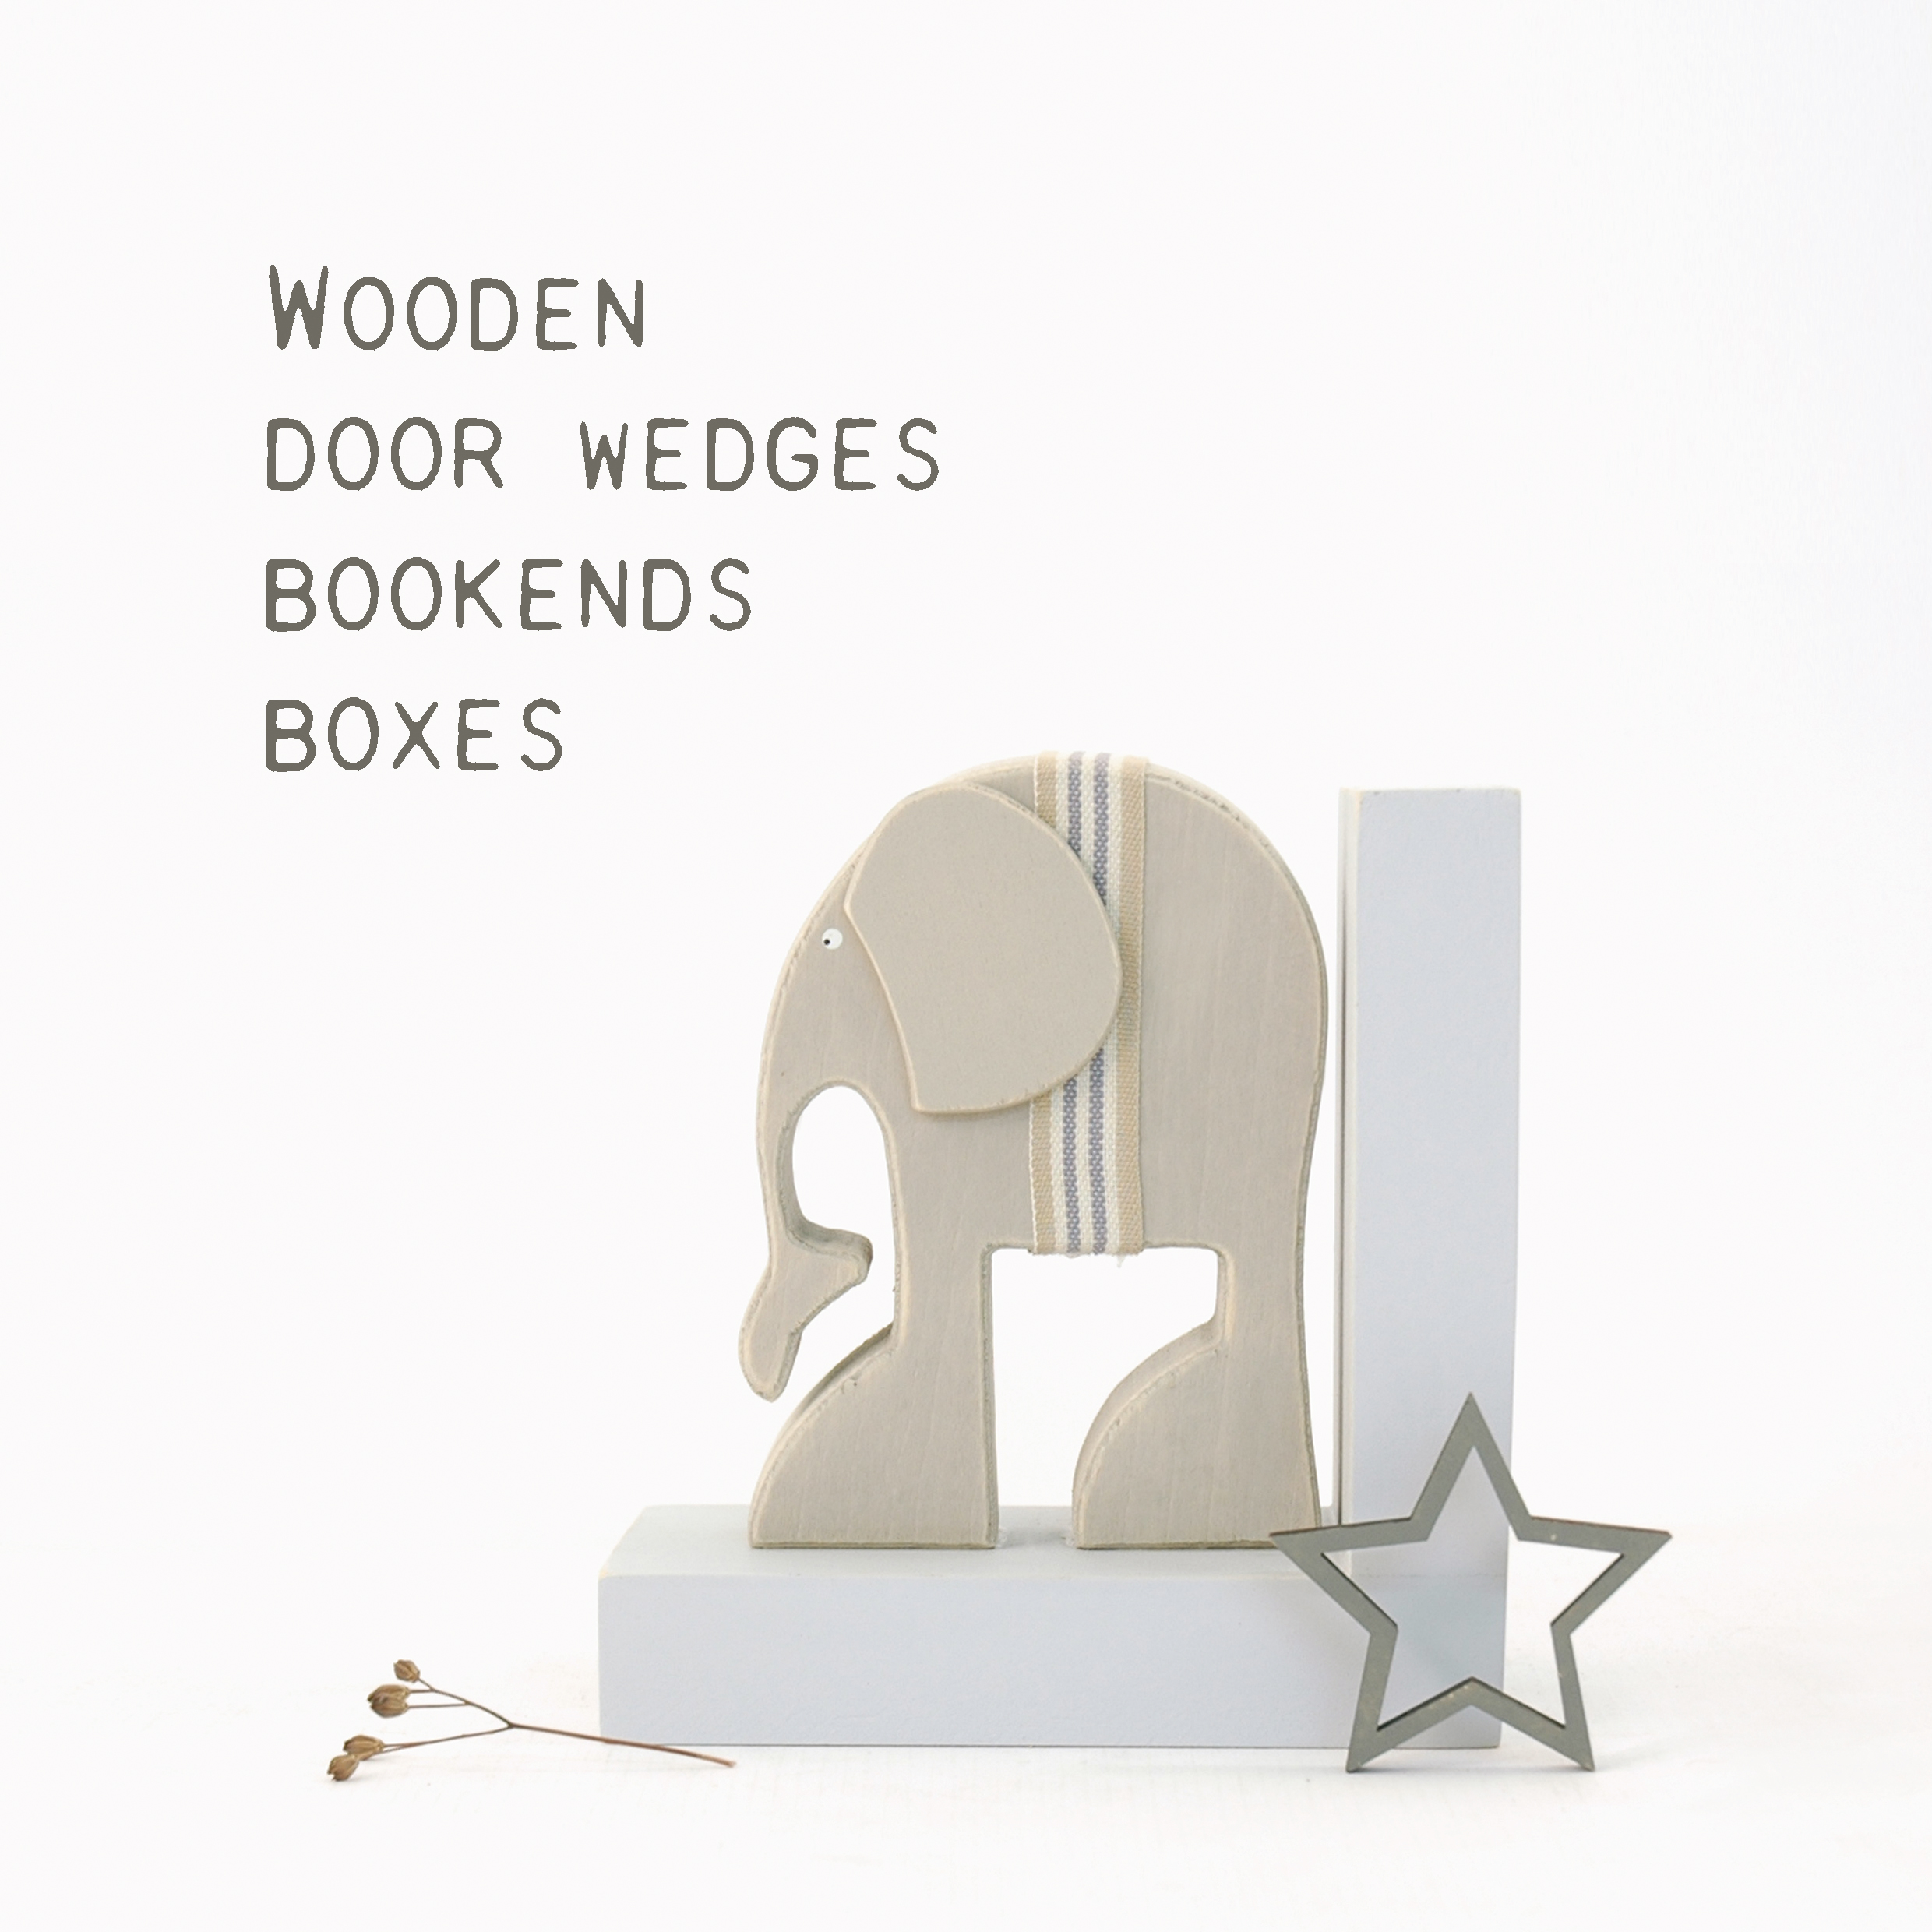 Boxes & Bookends & Door wedges